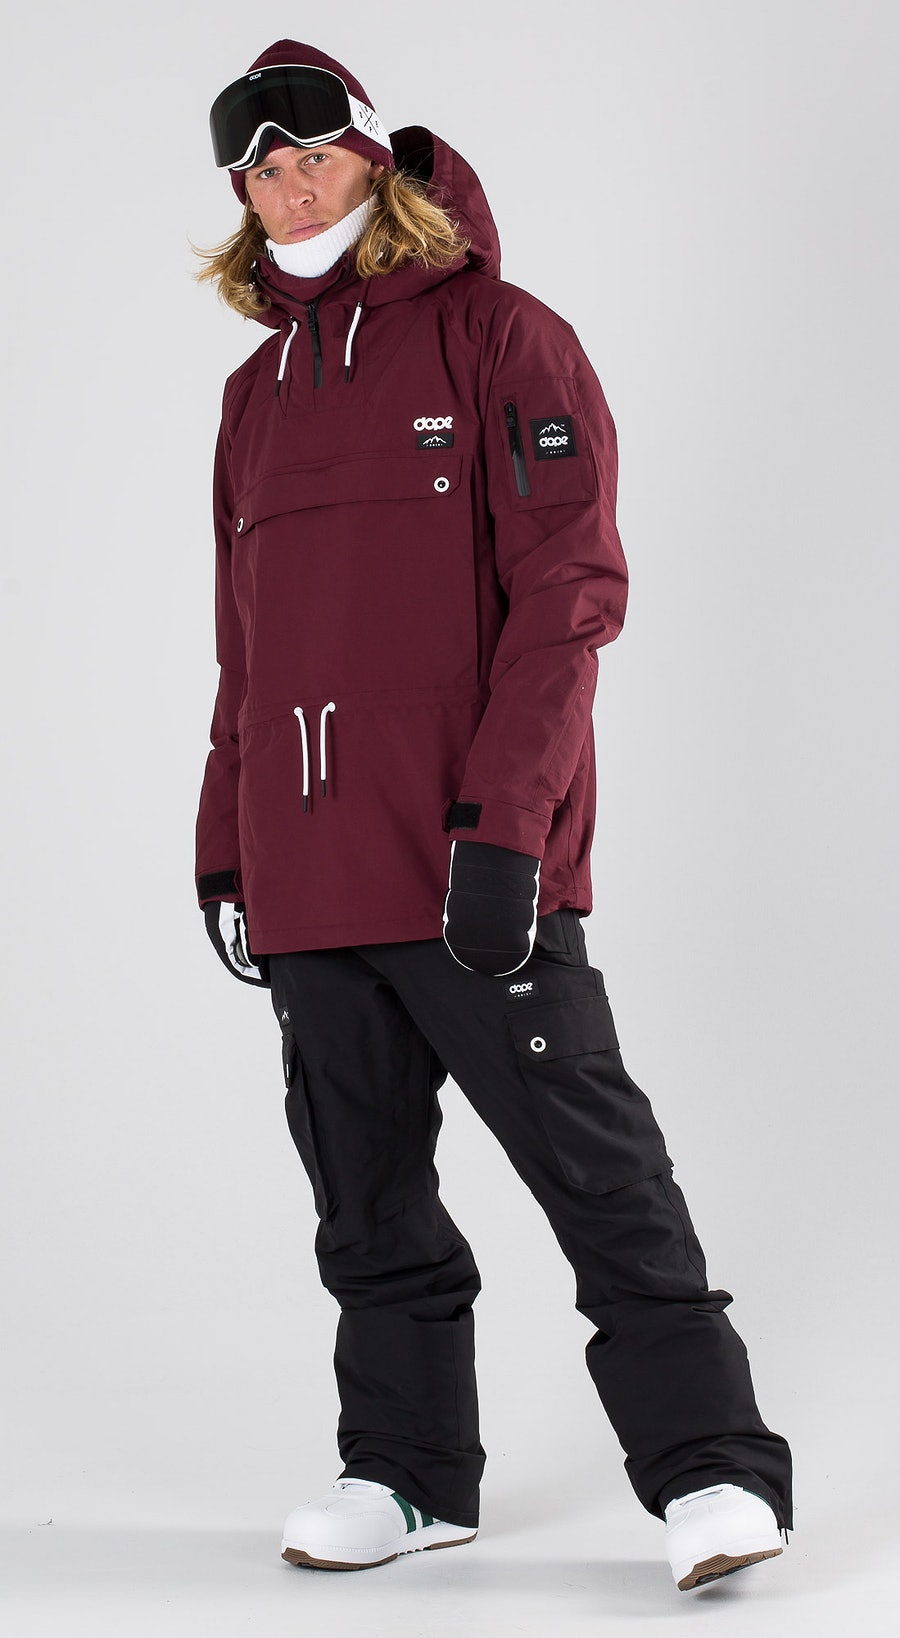 Dope Annok Burgundy Snowboard clothing Multi